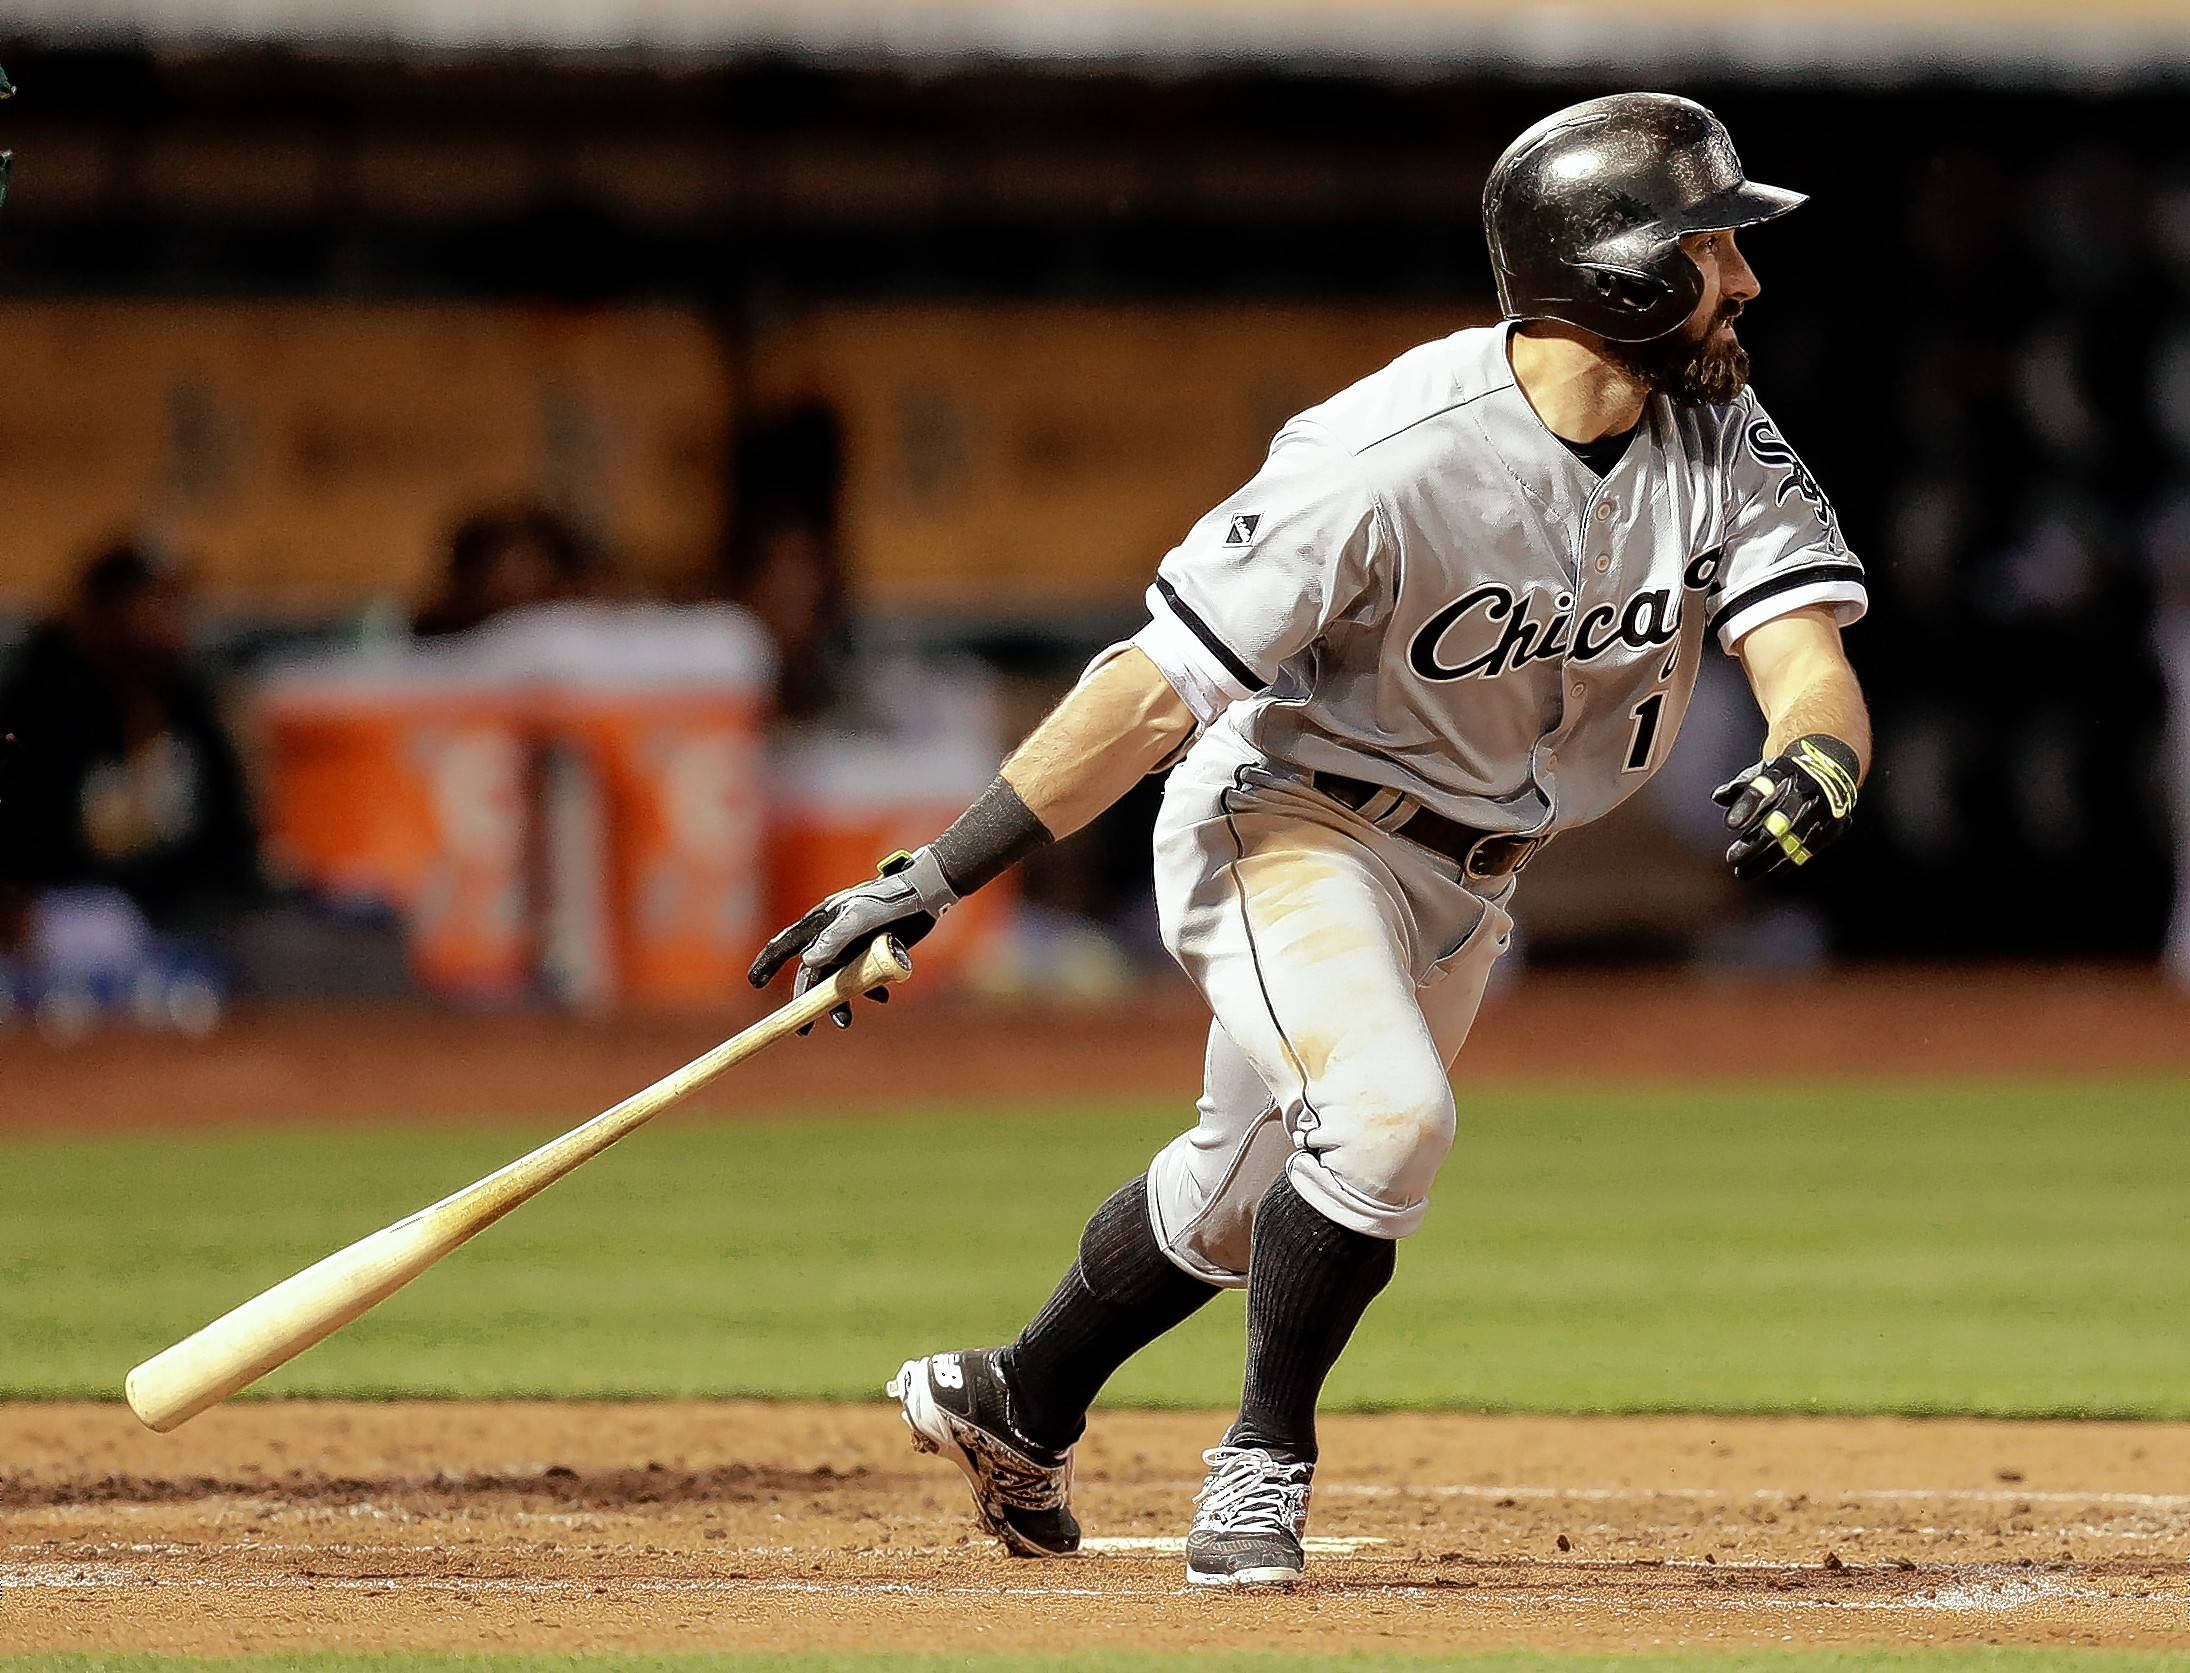 The Chicago White Sox have sent right fielder Adam Eaton to the Washington Nationals for three top prospects.